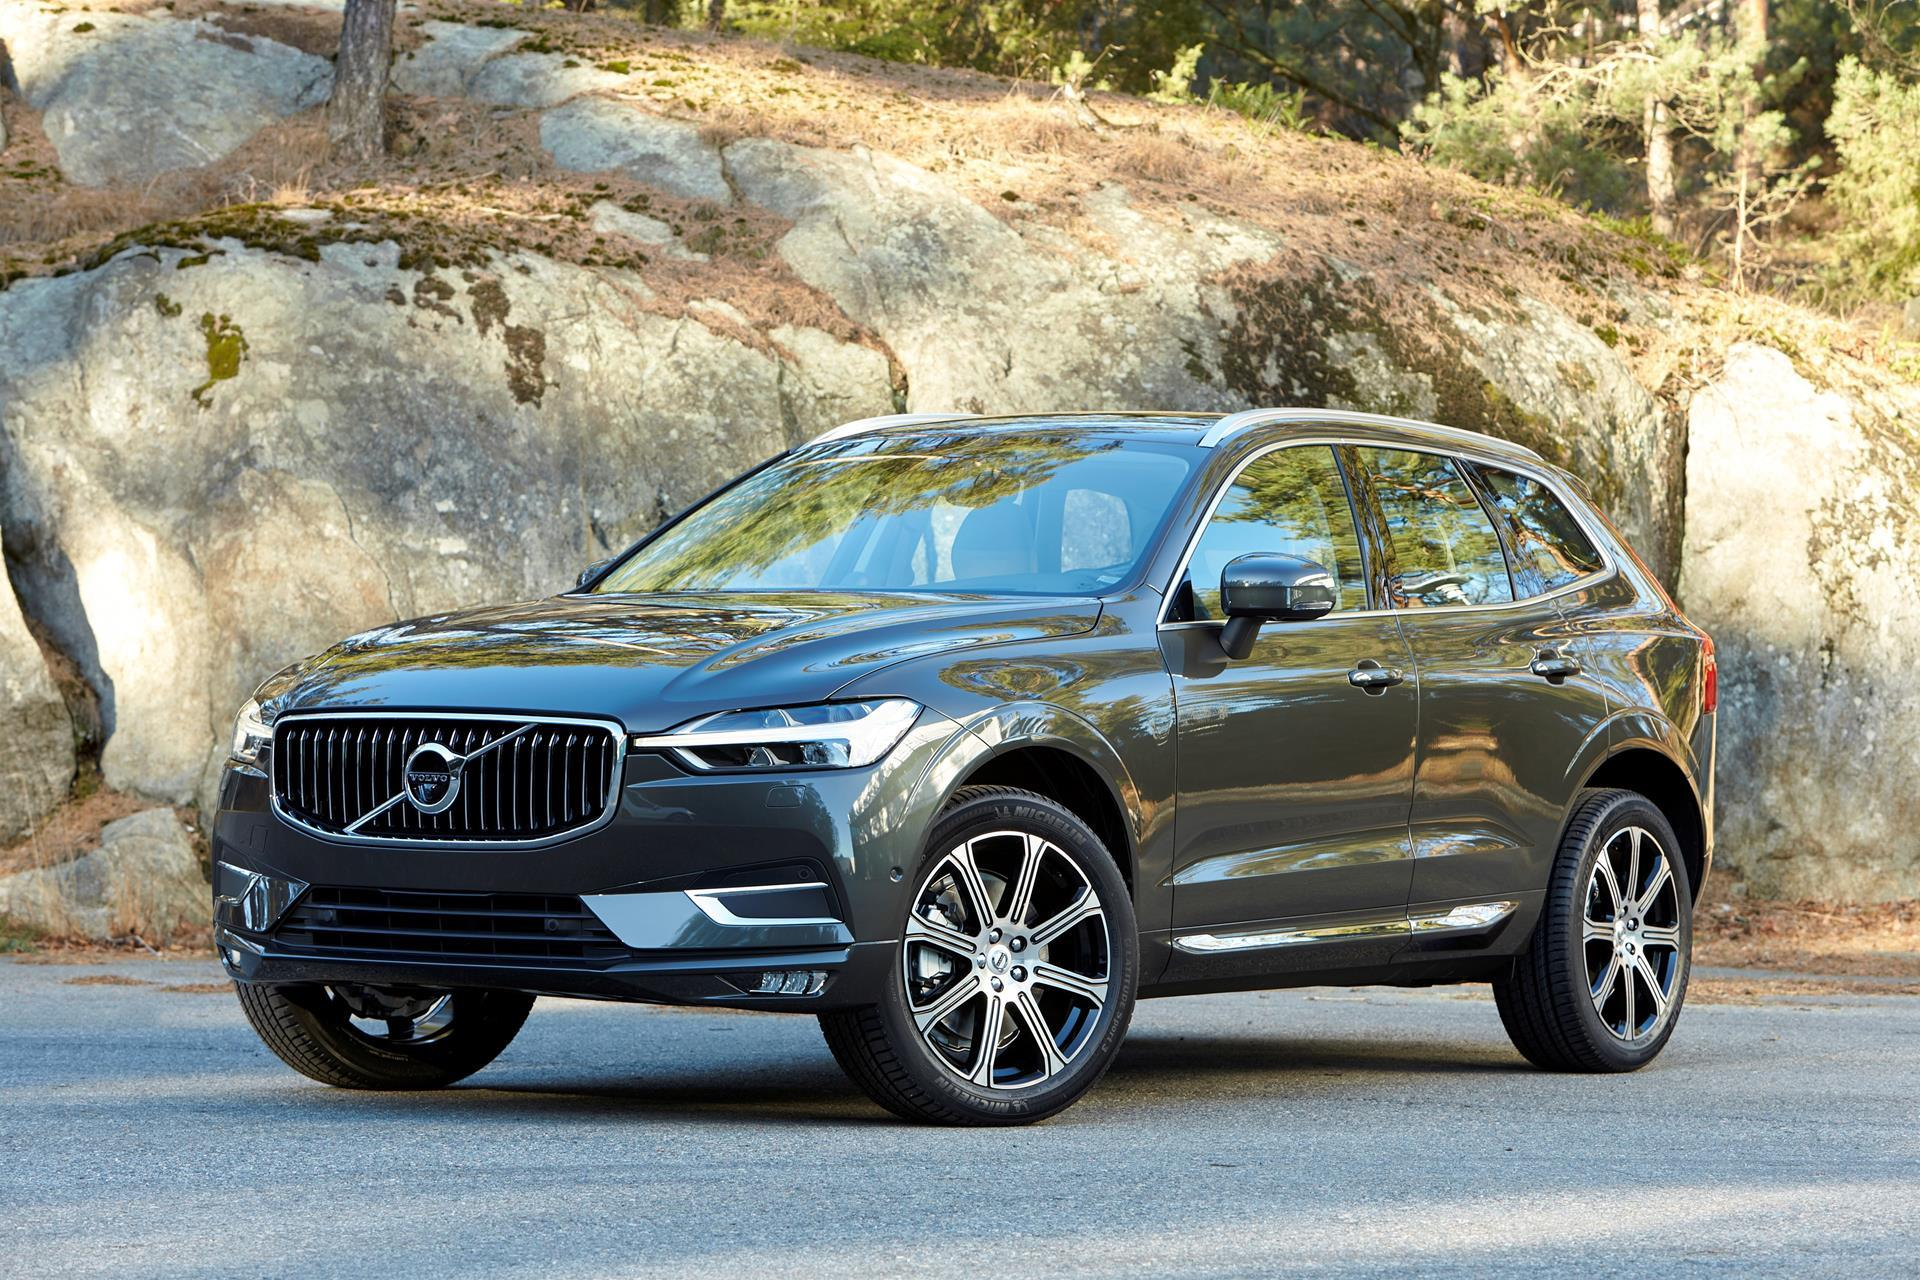 2018 volvo xc60 technical specifications and data engine dimensions and mechanical details. Black Bedroom Furniture Sets. Home Design Ideas